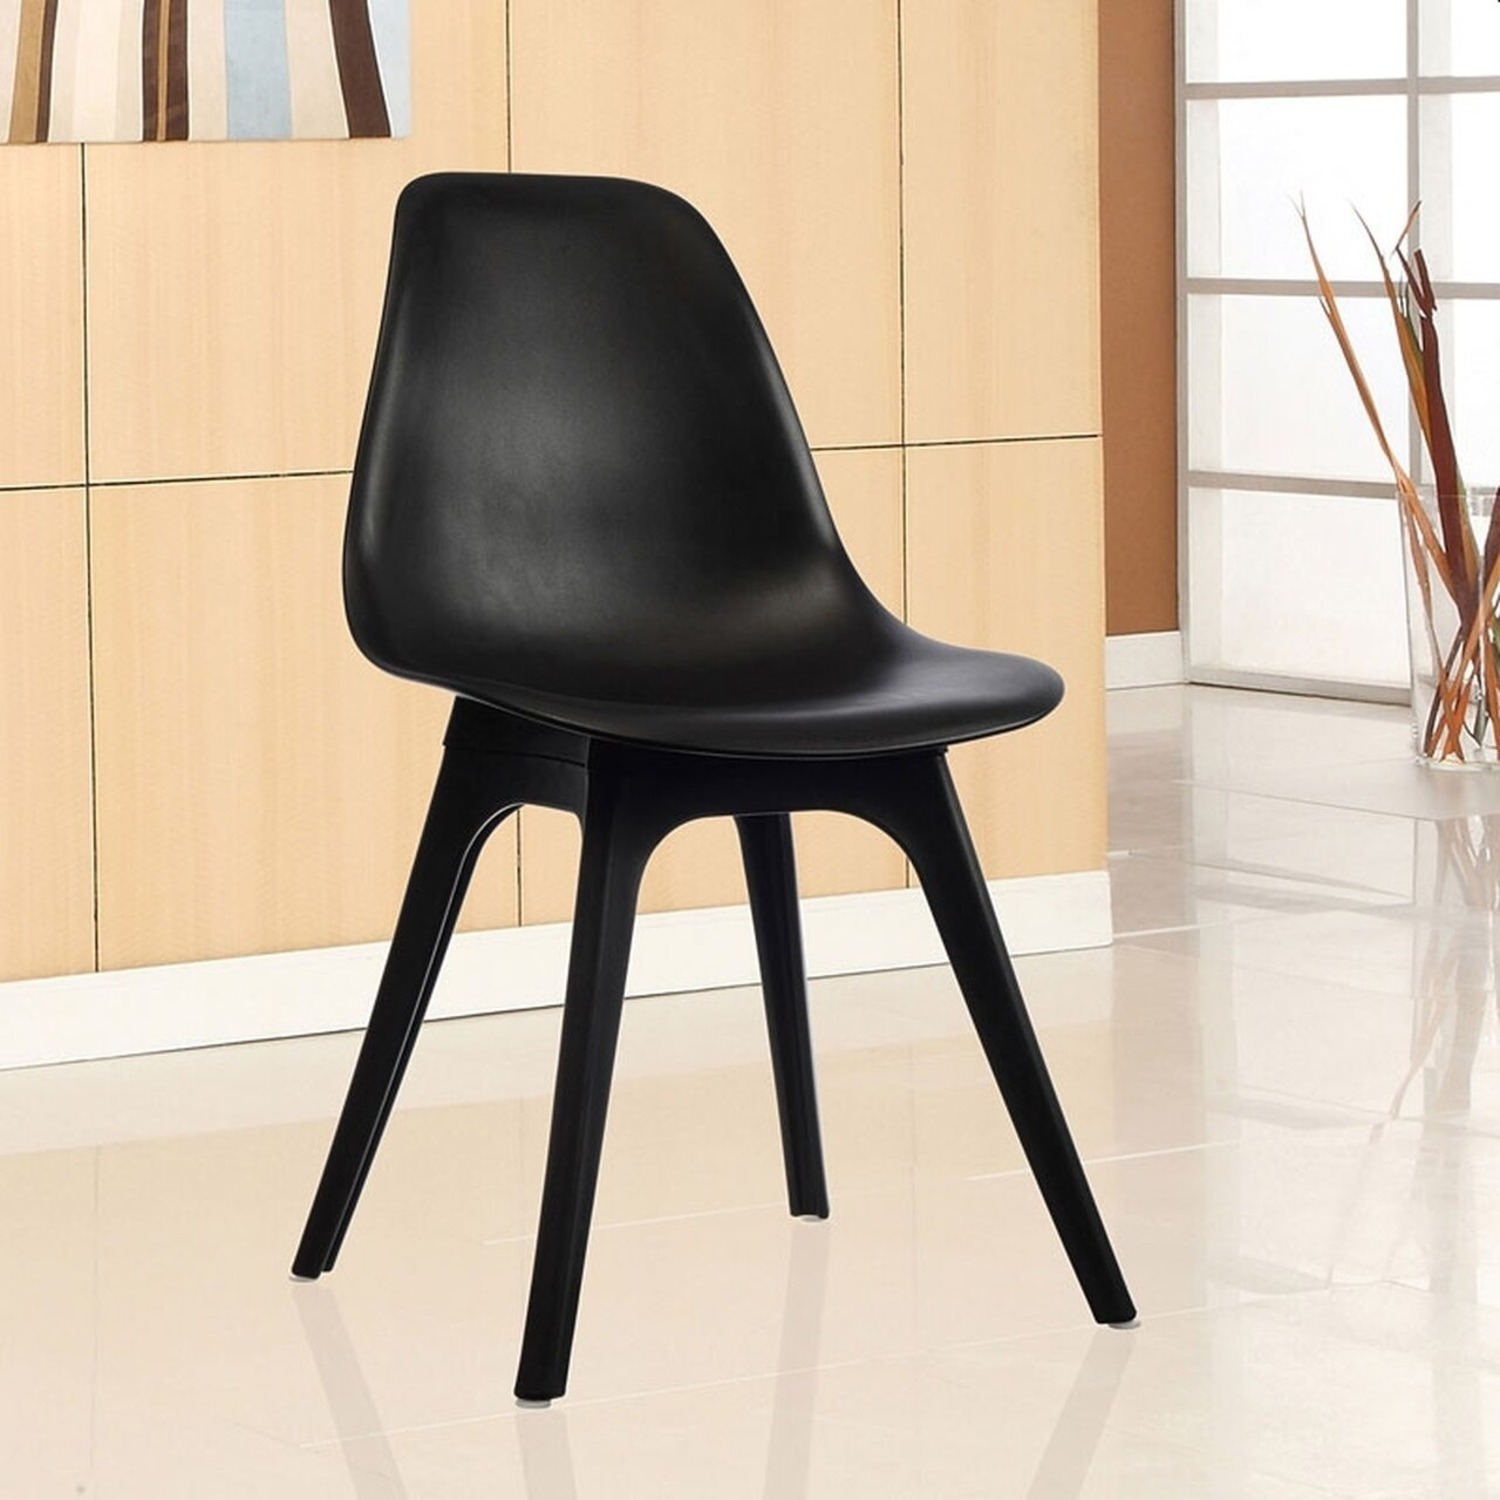 Side Chair In Black Color Finish - image-4